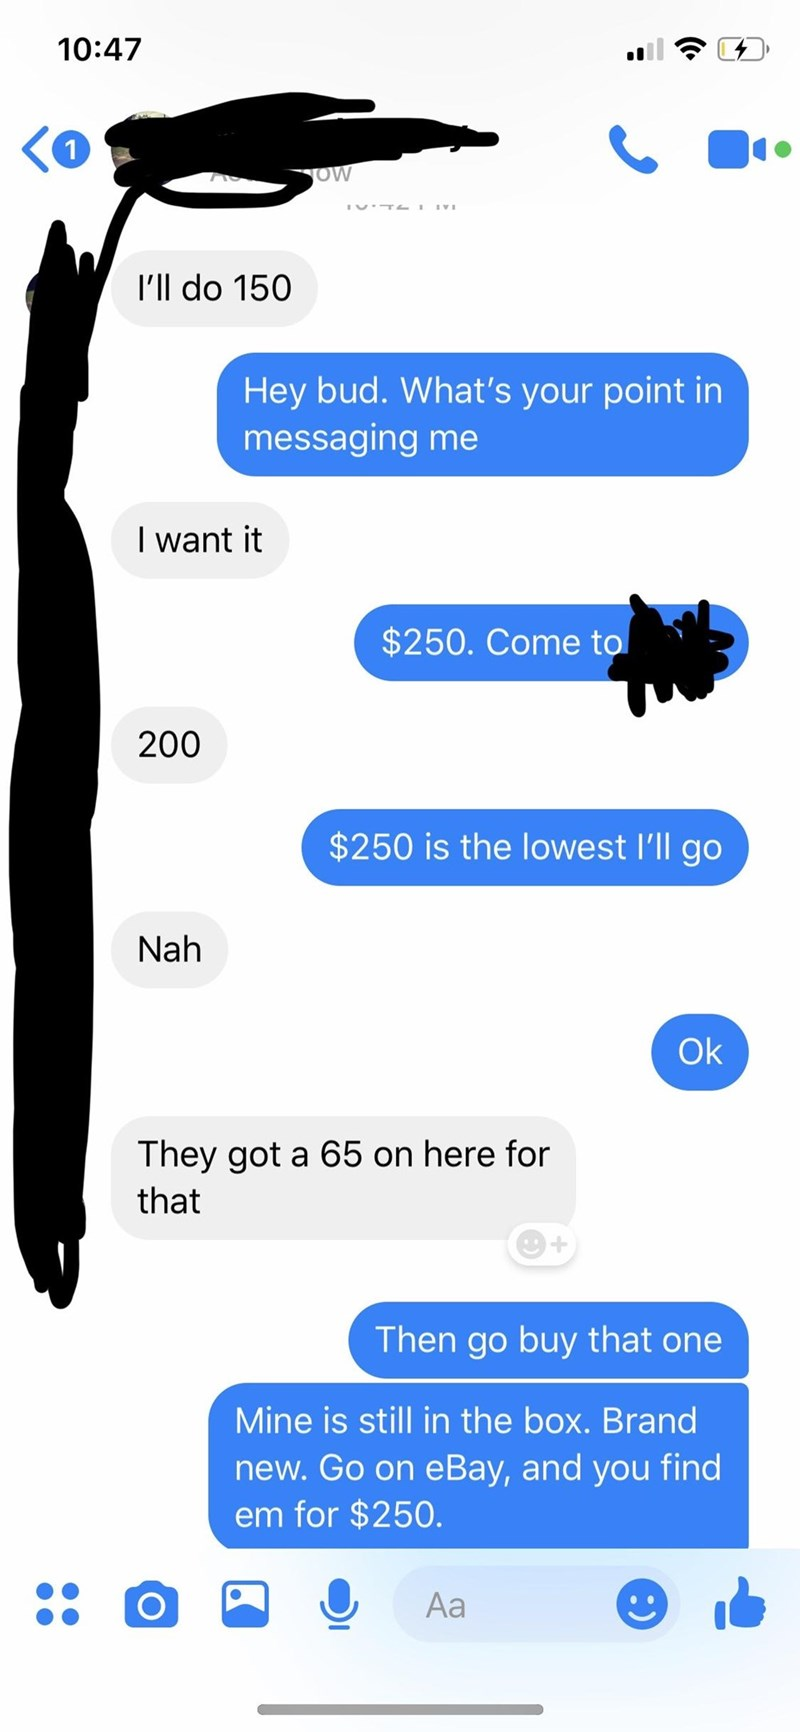 messages about wanting something for cheaper Hey bud. What's your point in messaging me I want it $250. Come to 200 $250 is the lowest I'll go Nah Ok They got a 65 on here for that Then go buy that one Mine is still in the box. Brand new. Go on eBay, and you find em for $250. Aa